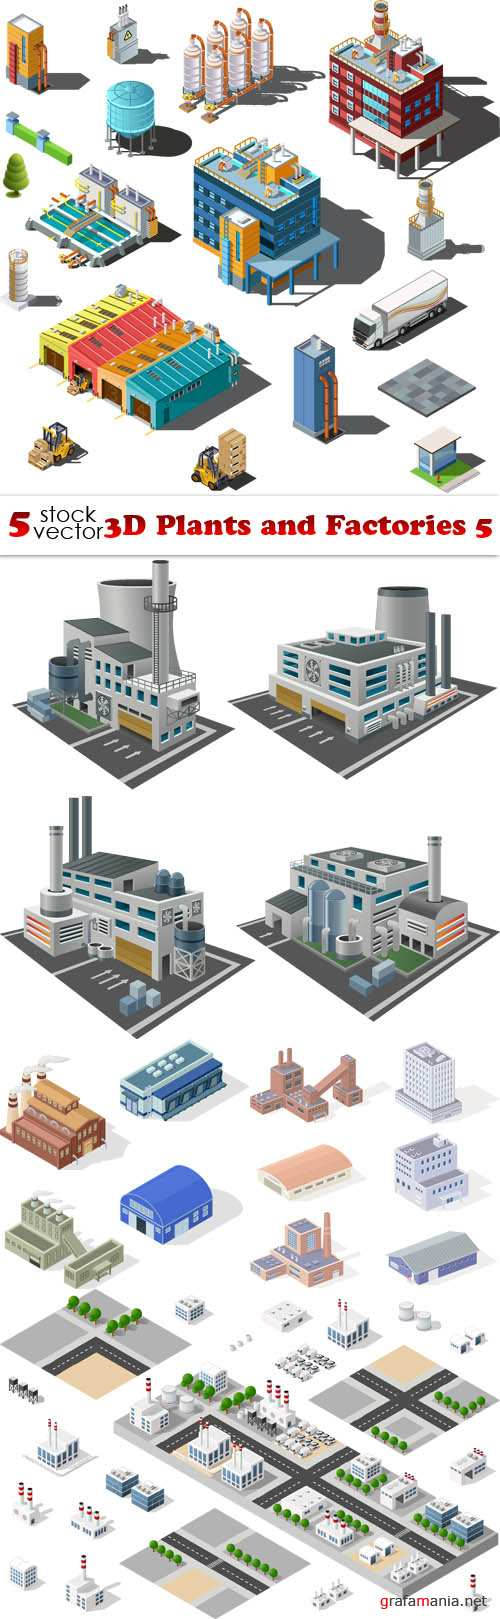 Vectors - 3D Plants and Factories 5